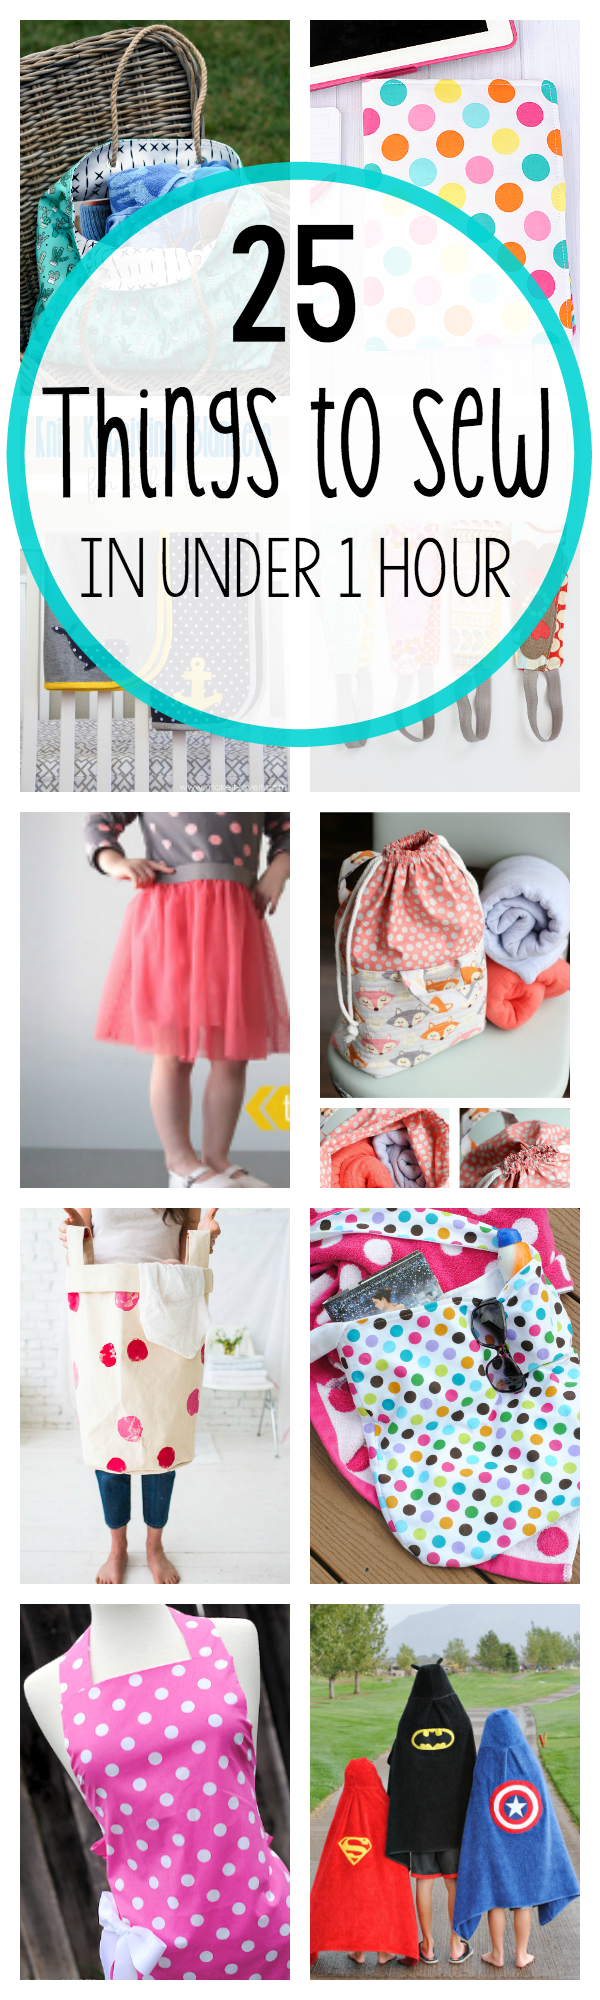 Easy Sewing Projects 25 Things To Sew In Under 1 Hour